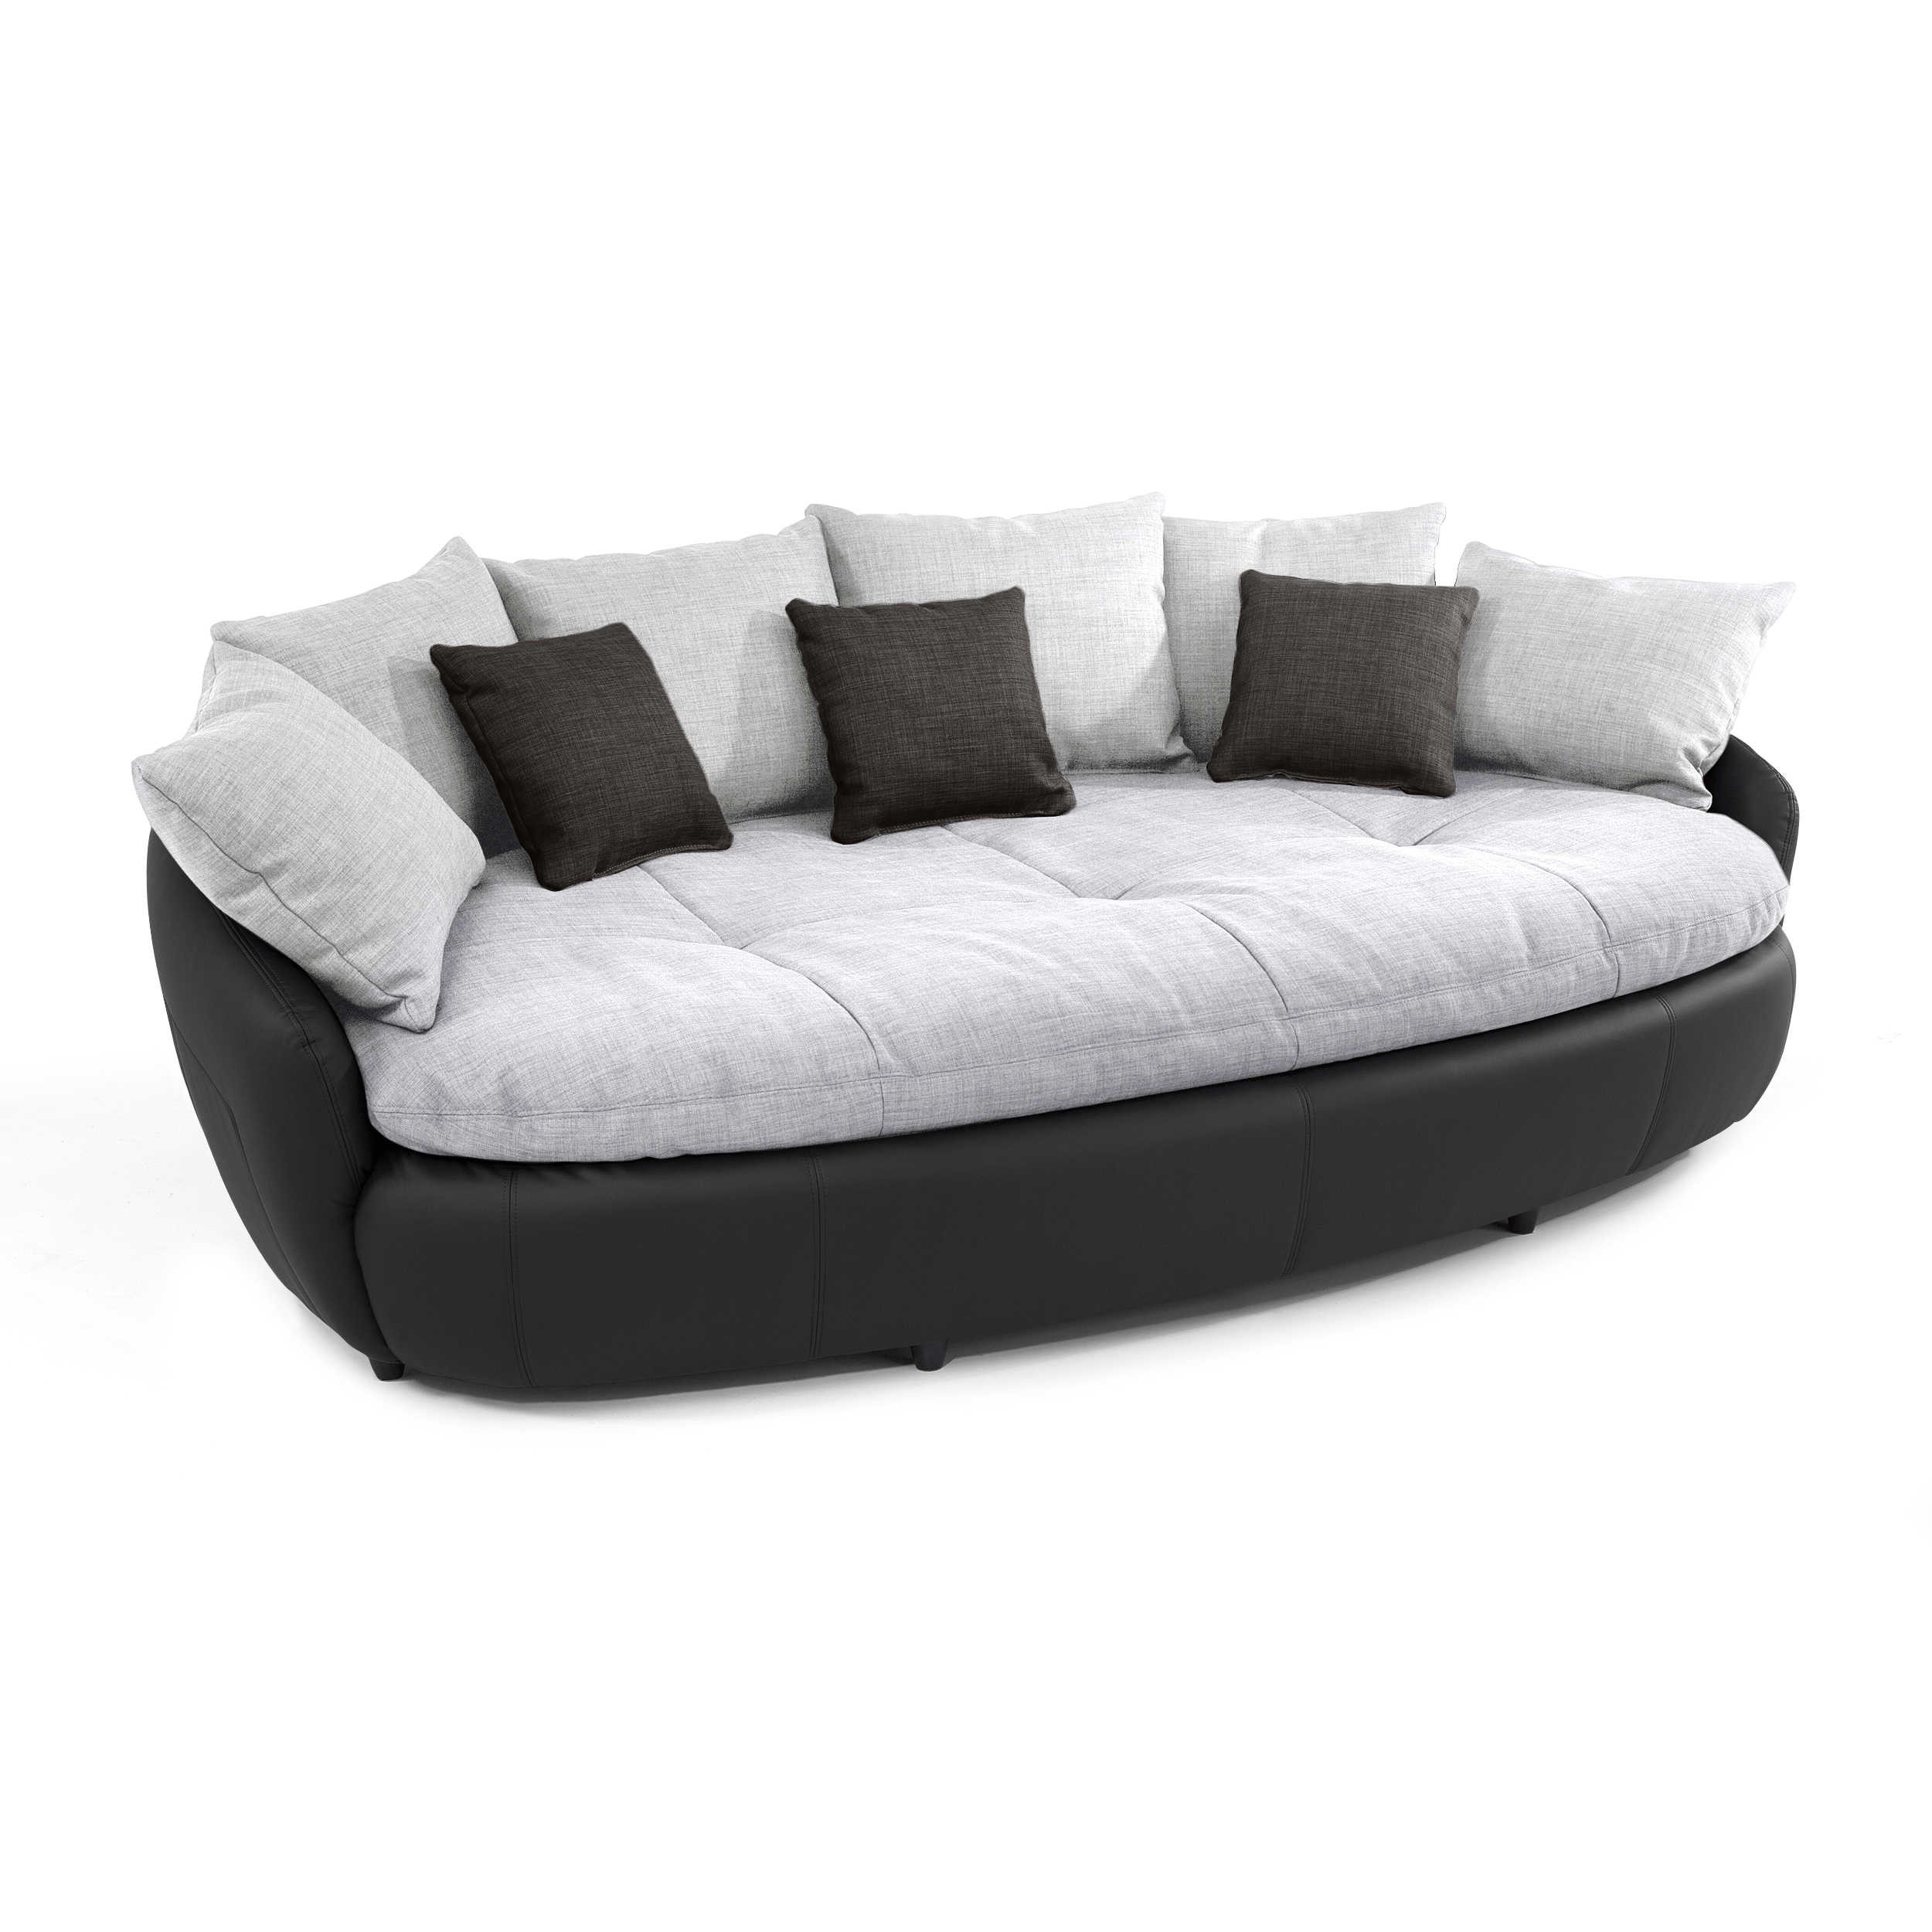 sofa aruba grau stoff online kaufen bei woonio. Black Bedroom Furniture Sets. Home Design Ideas